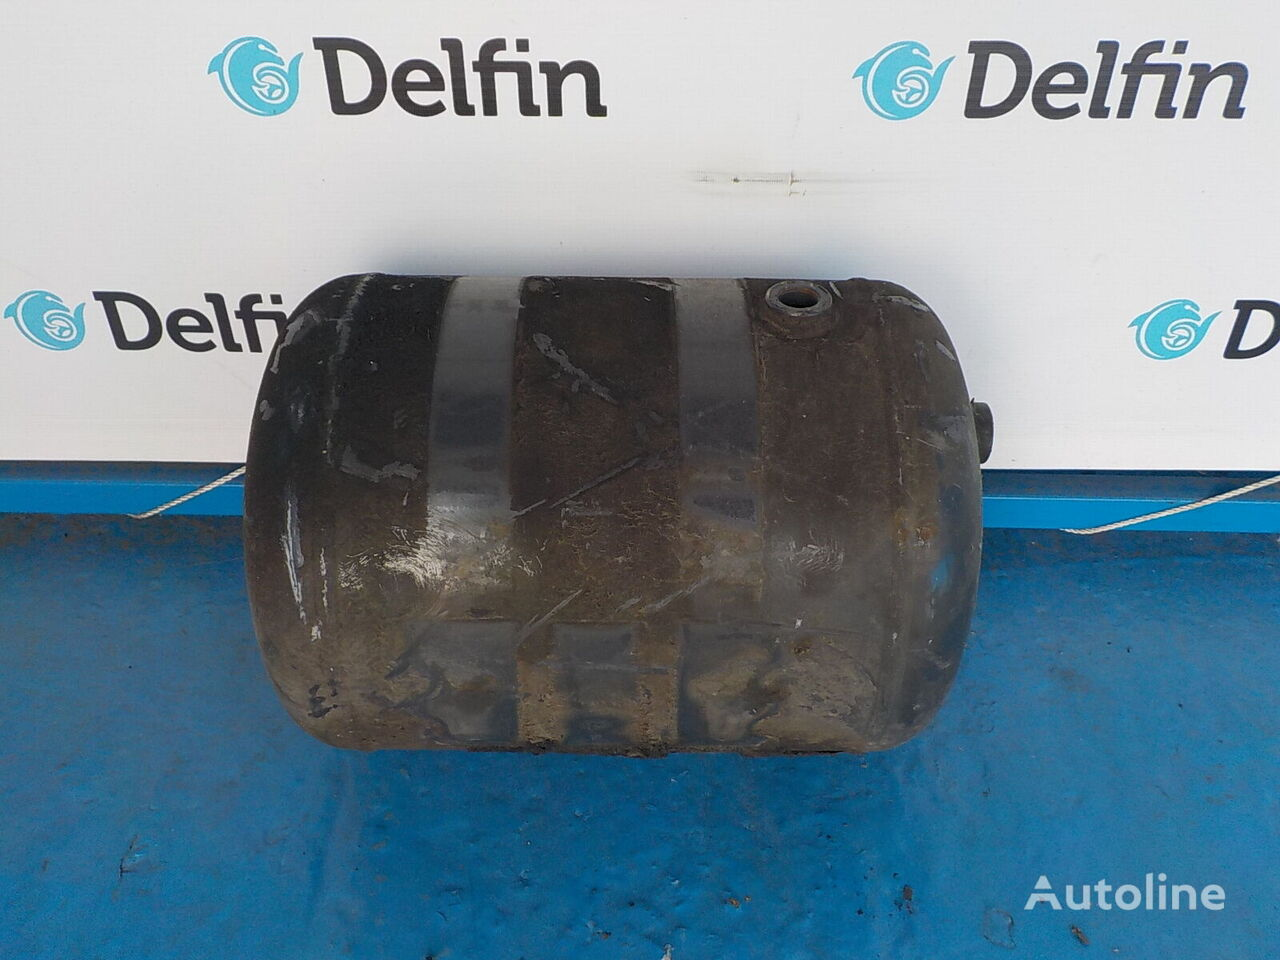 SCANIA air tank for SCANIA truck